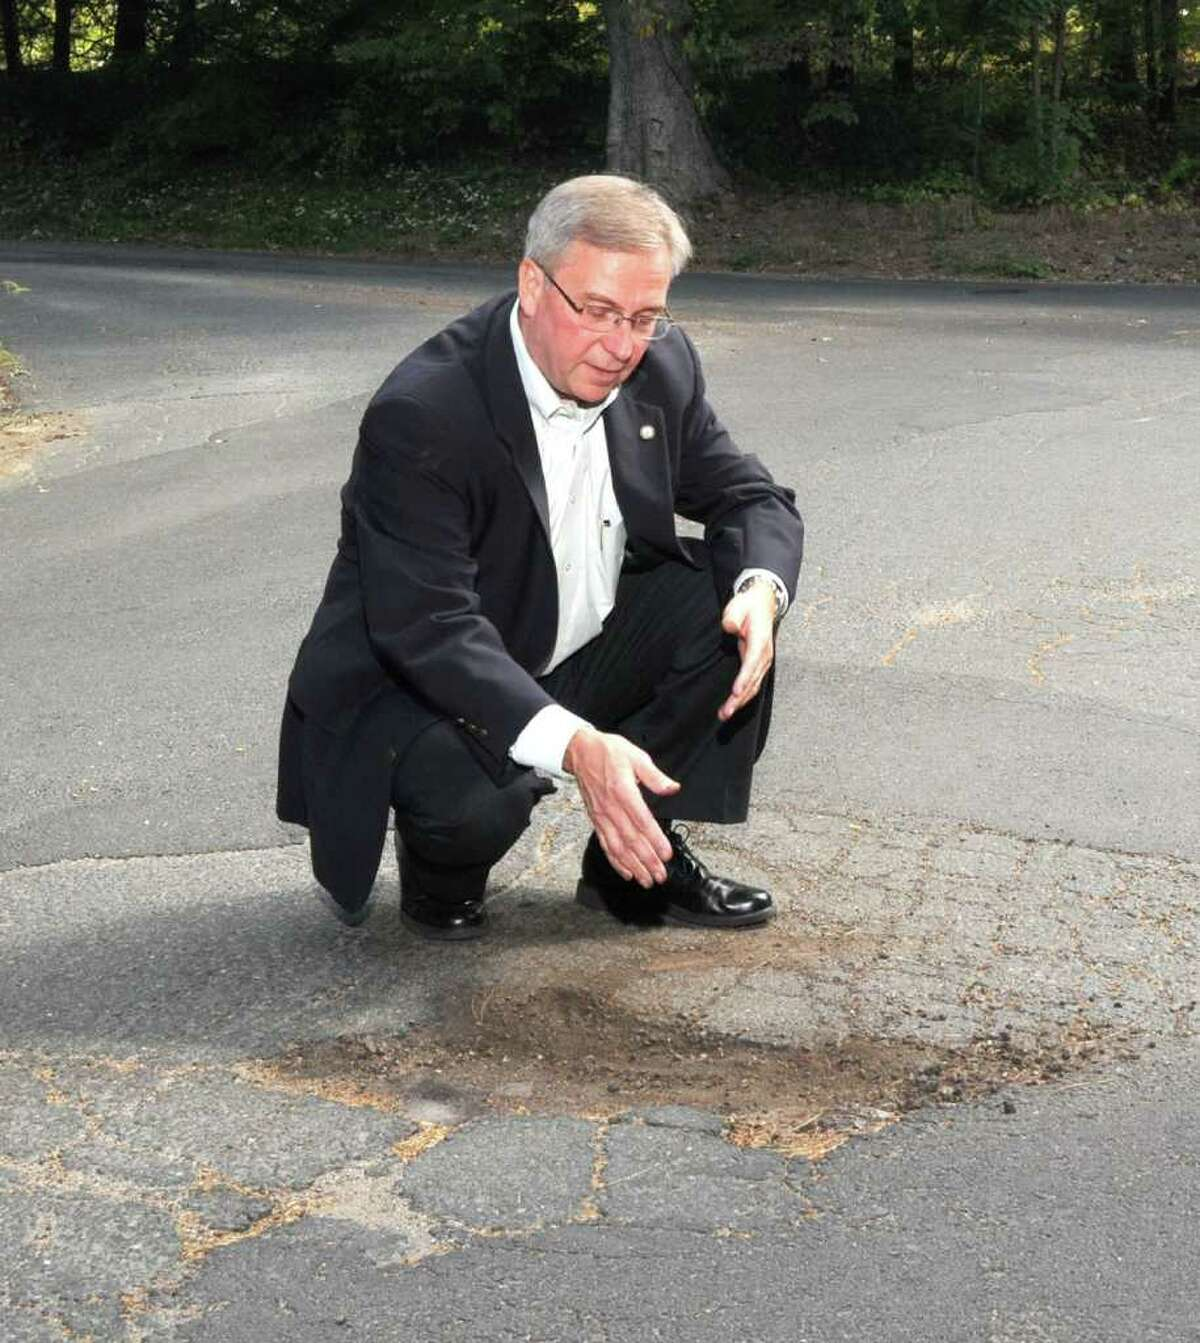 Bethel First Selectman Matt Knickerbocker examines a pothole that exposes three layers of pavement at the intersection of Walnut Hill Road and Weed Road in Bethel on September 13, 2010.